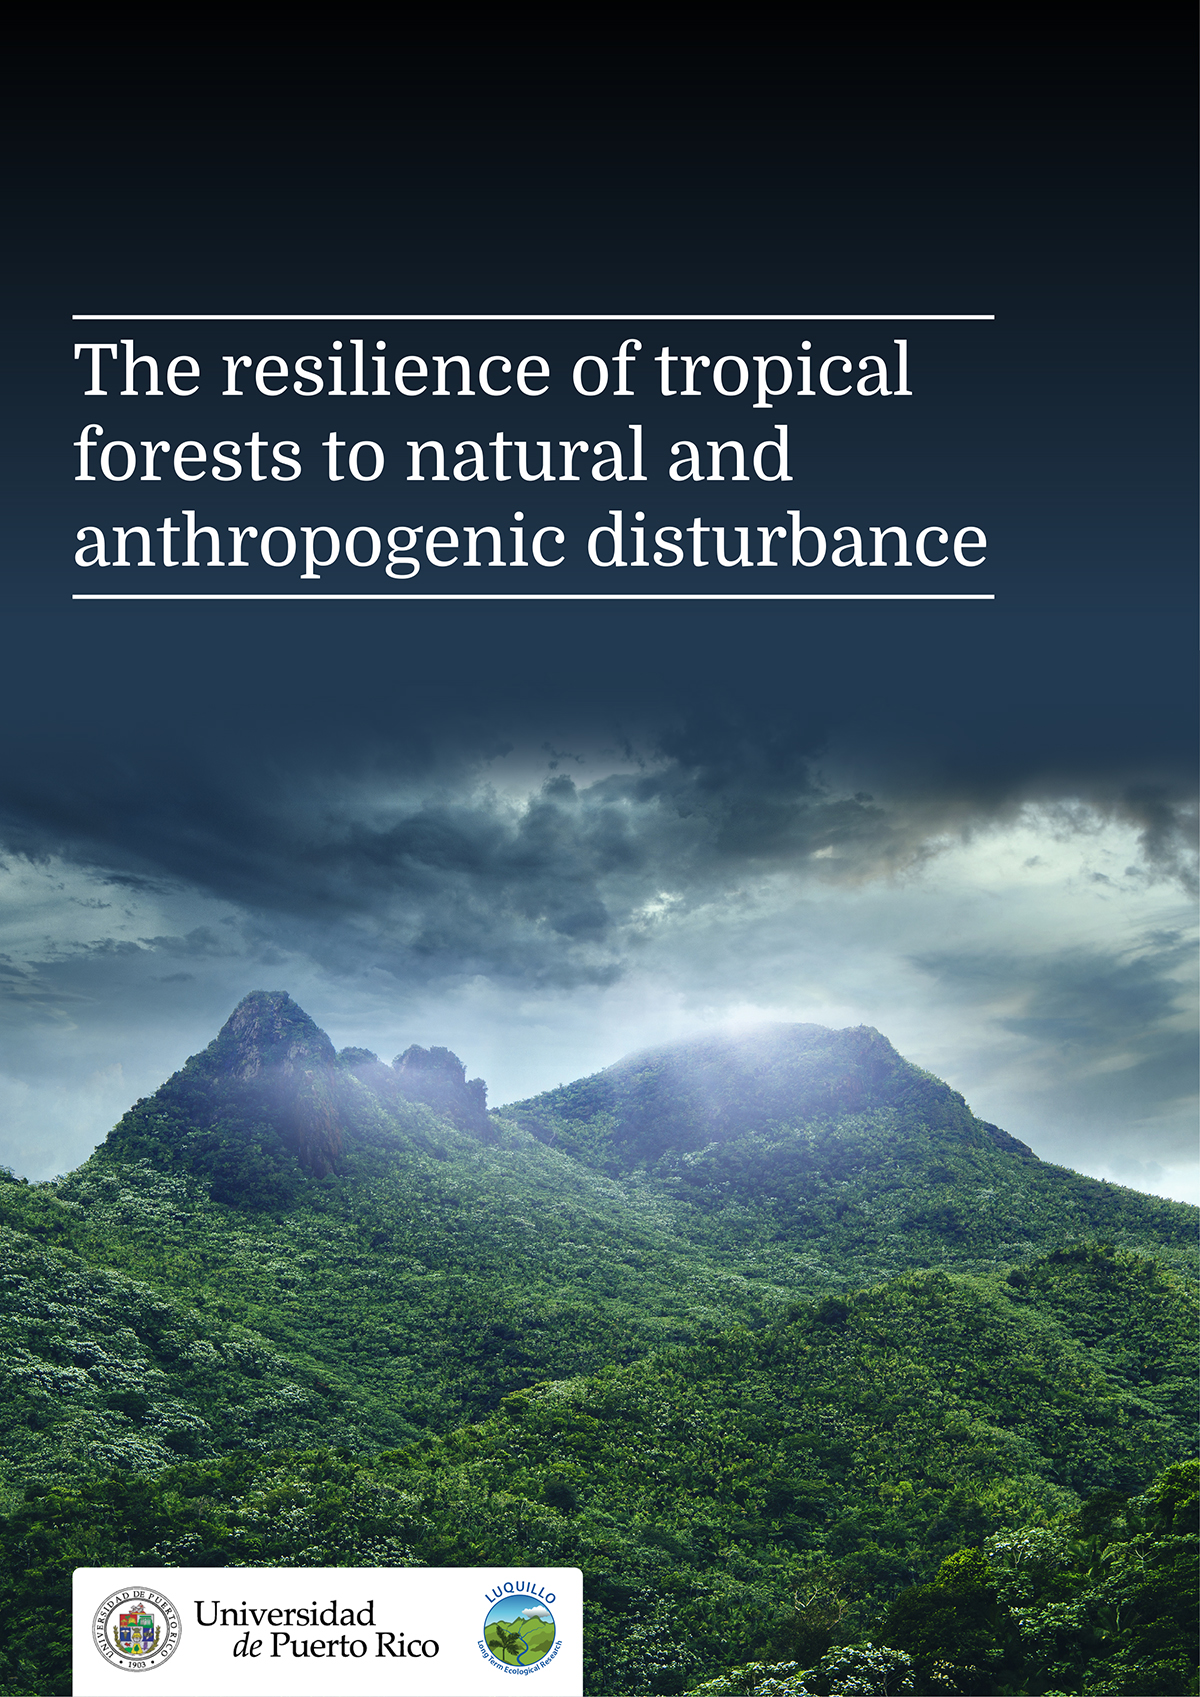 tropical forests, LEF